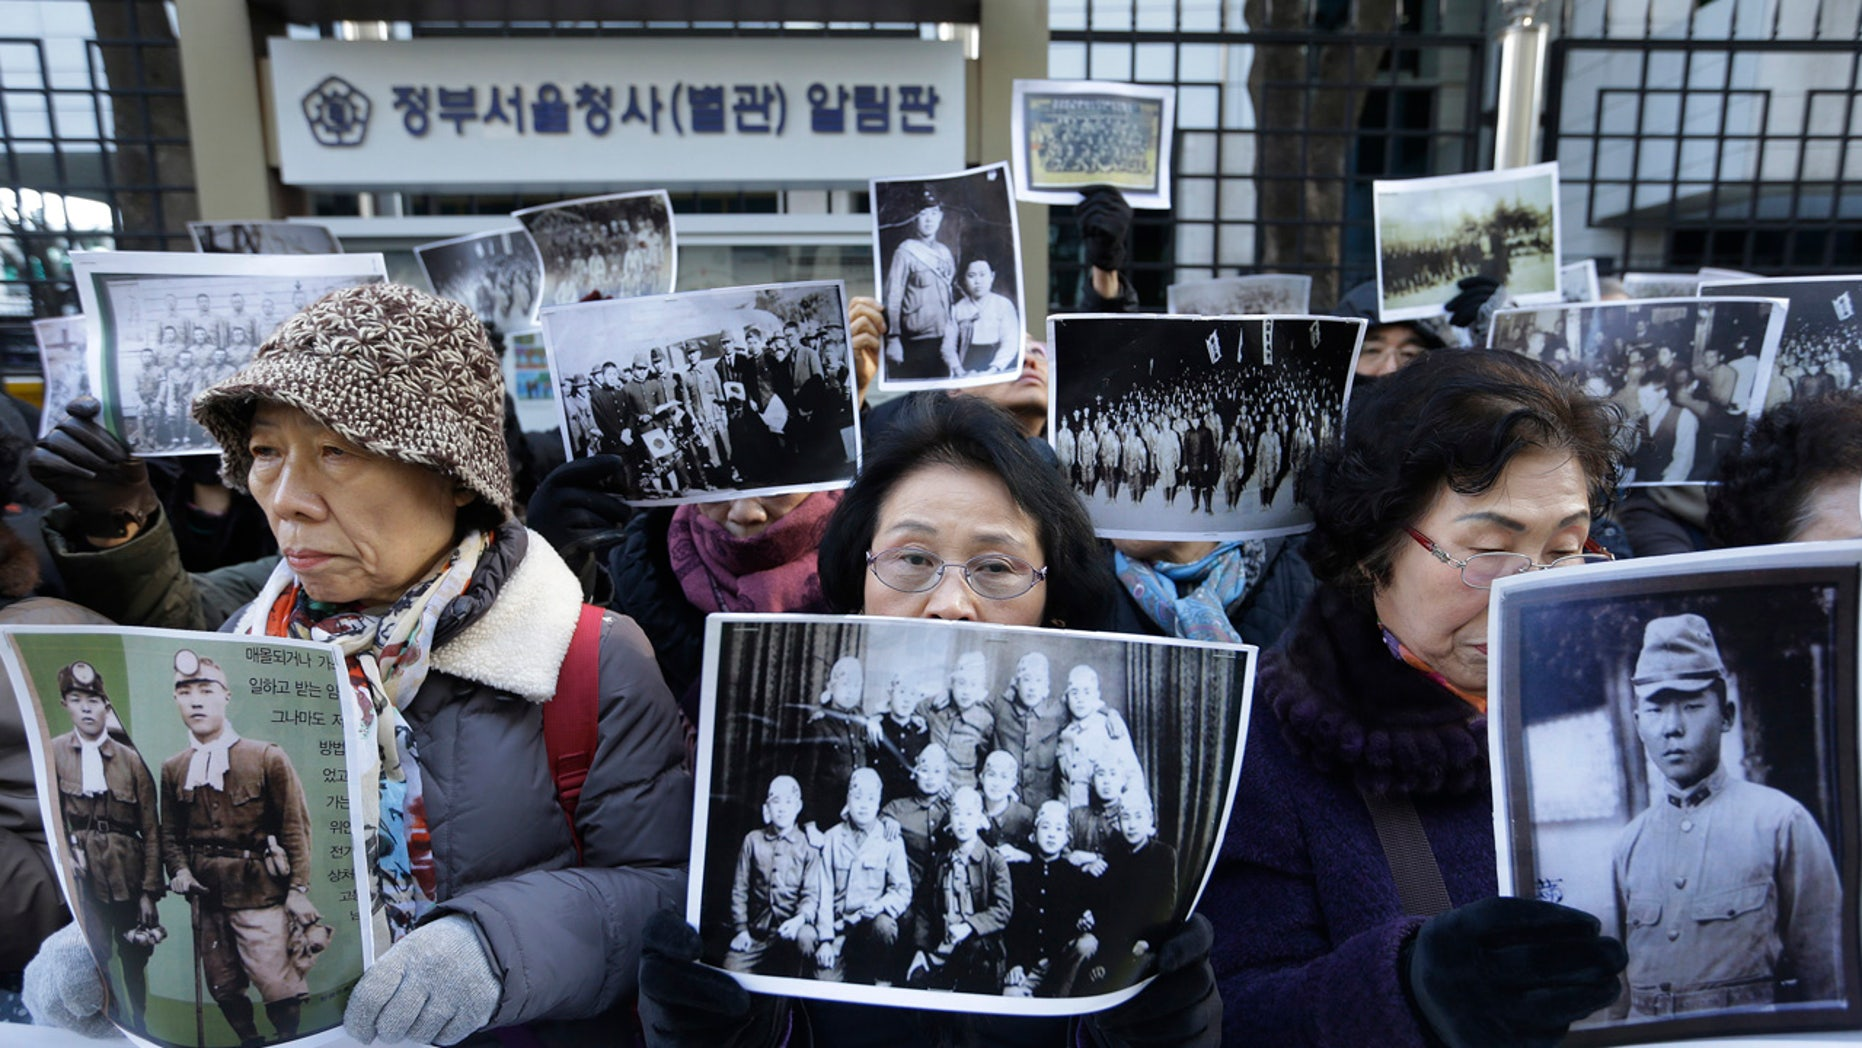 Dec. 28, 2015: Bereaved family members of South Korean victims of World War II stage a rally in front of the Foreign Ministry in Seoul demanding full compensation and an apology from the Japanese government (AP Photo/Ahn Young-joon)